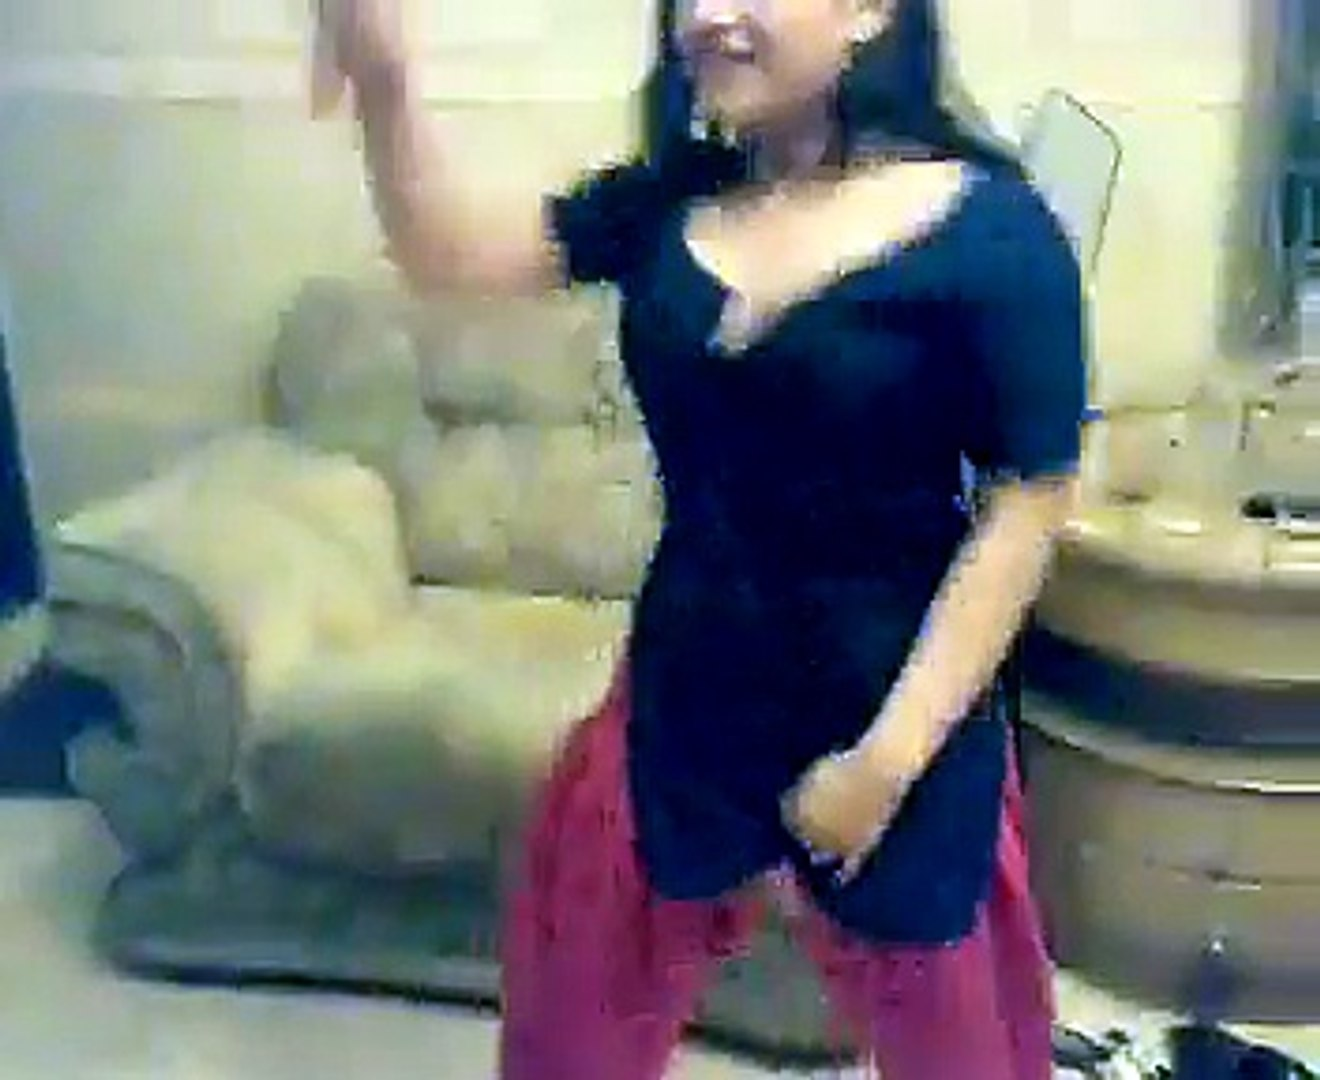 Enjoy 2 Sexy Girls sexy Dance...!! | Watch online 2 Sexy Girls Dance, Indian Desi Girl Home Hot Danc